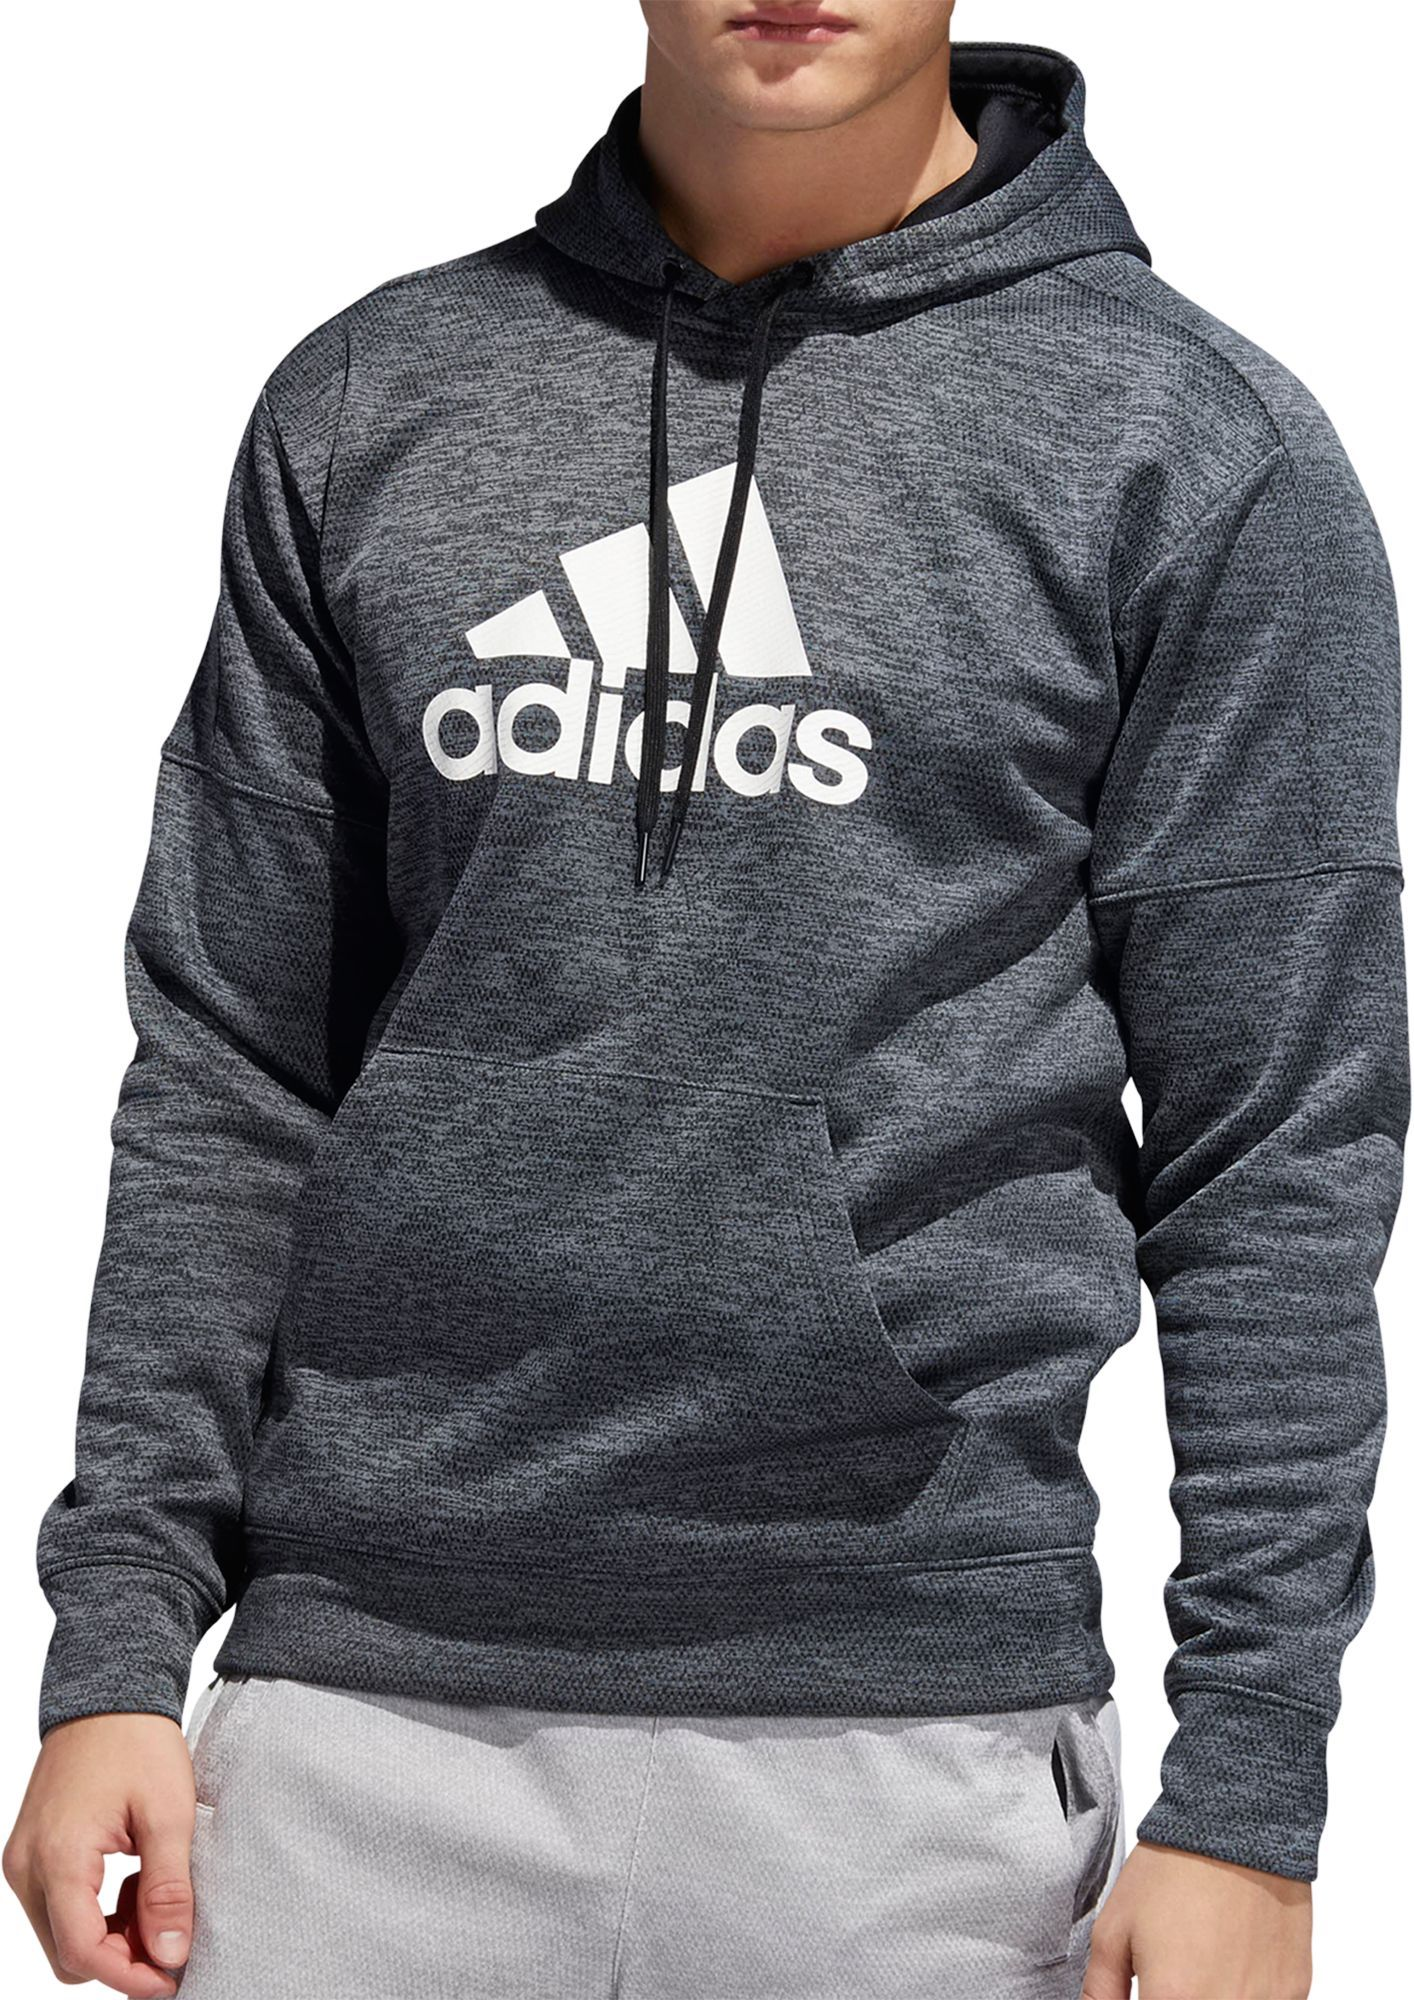 615301af8403 adidas Men's Team Issue Badge Of Sport Hoodie in 2019 | Products ...